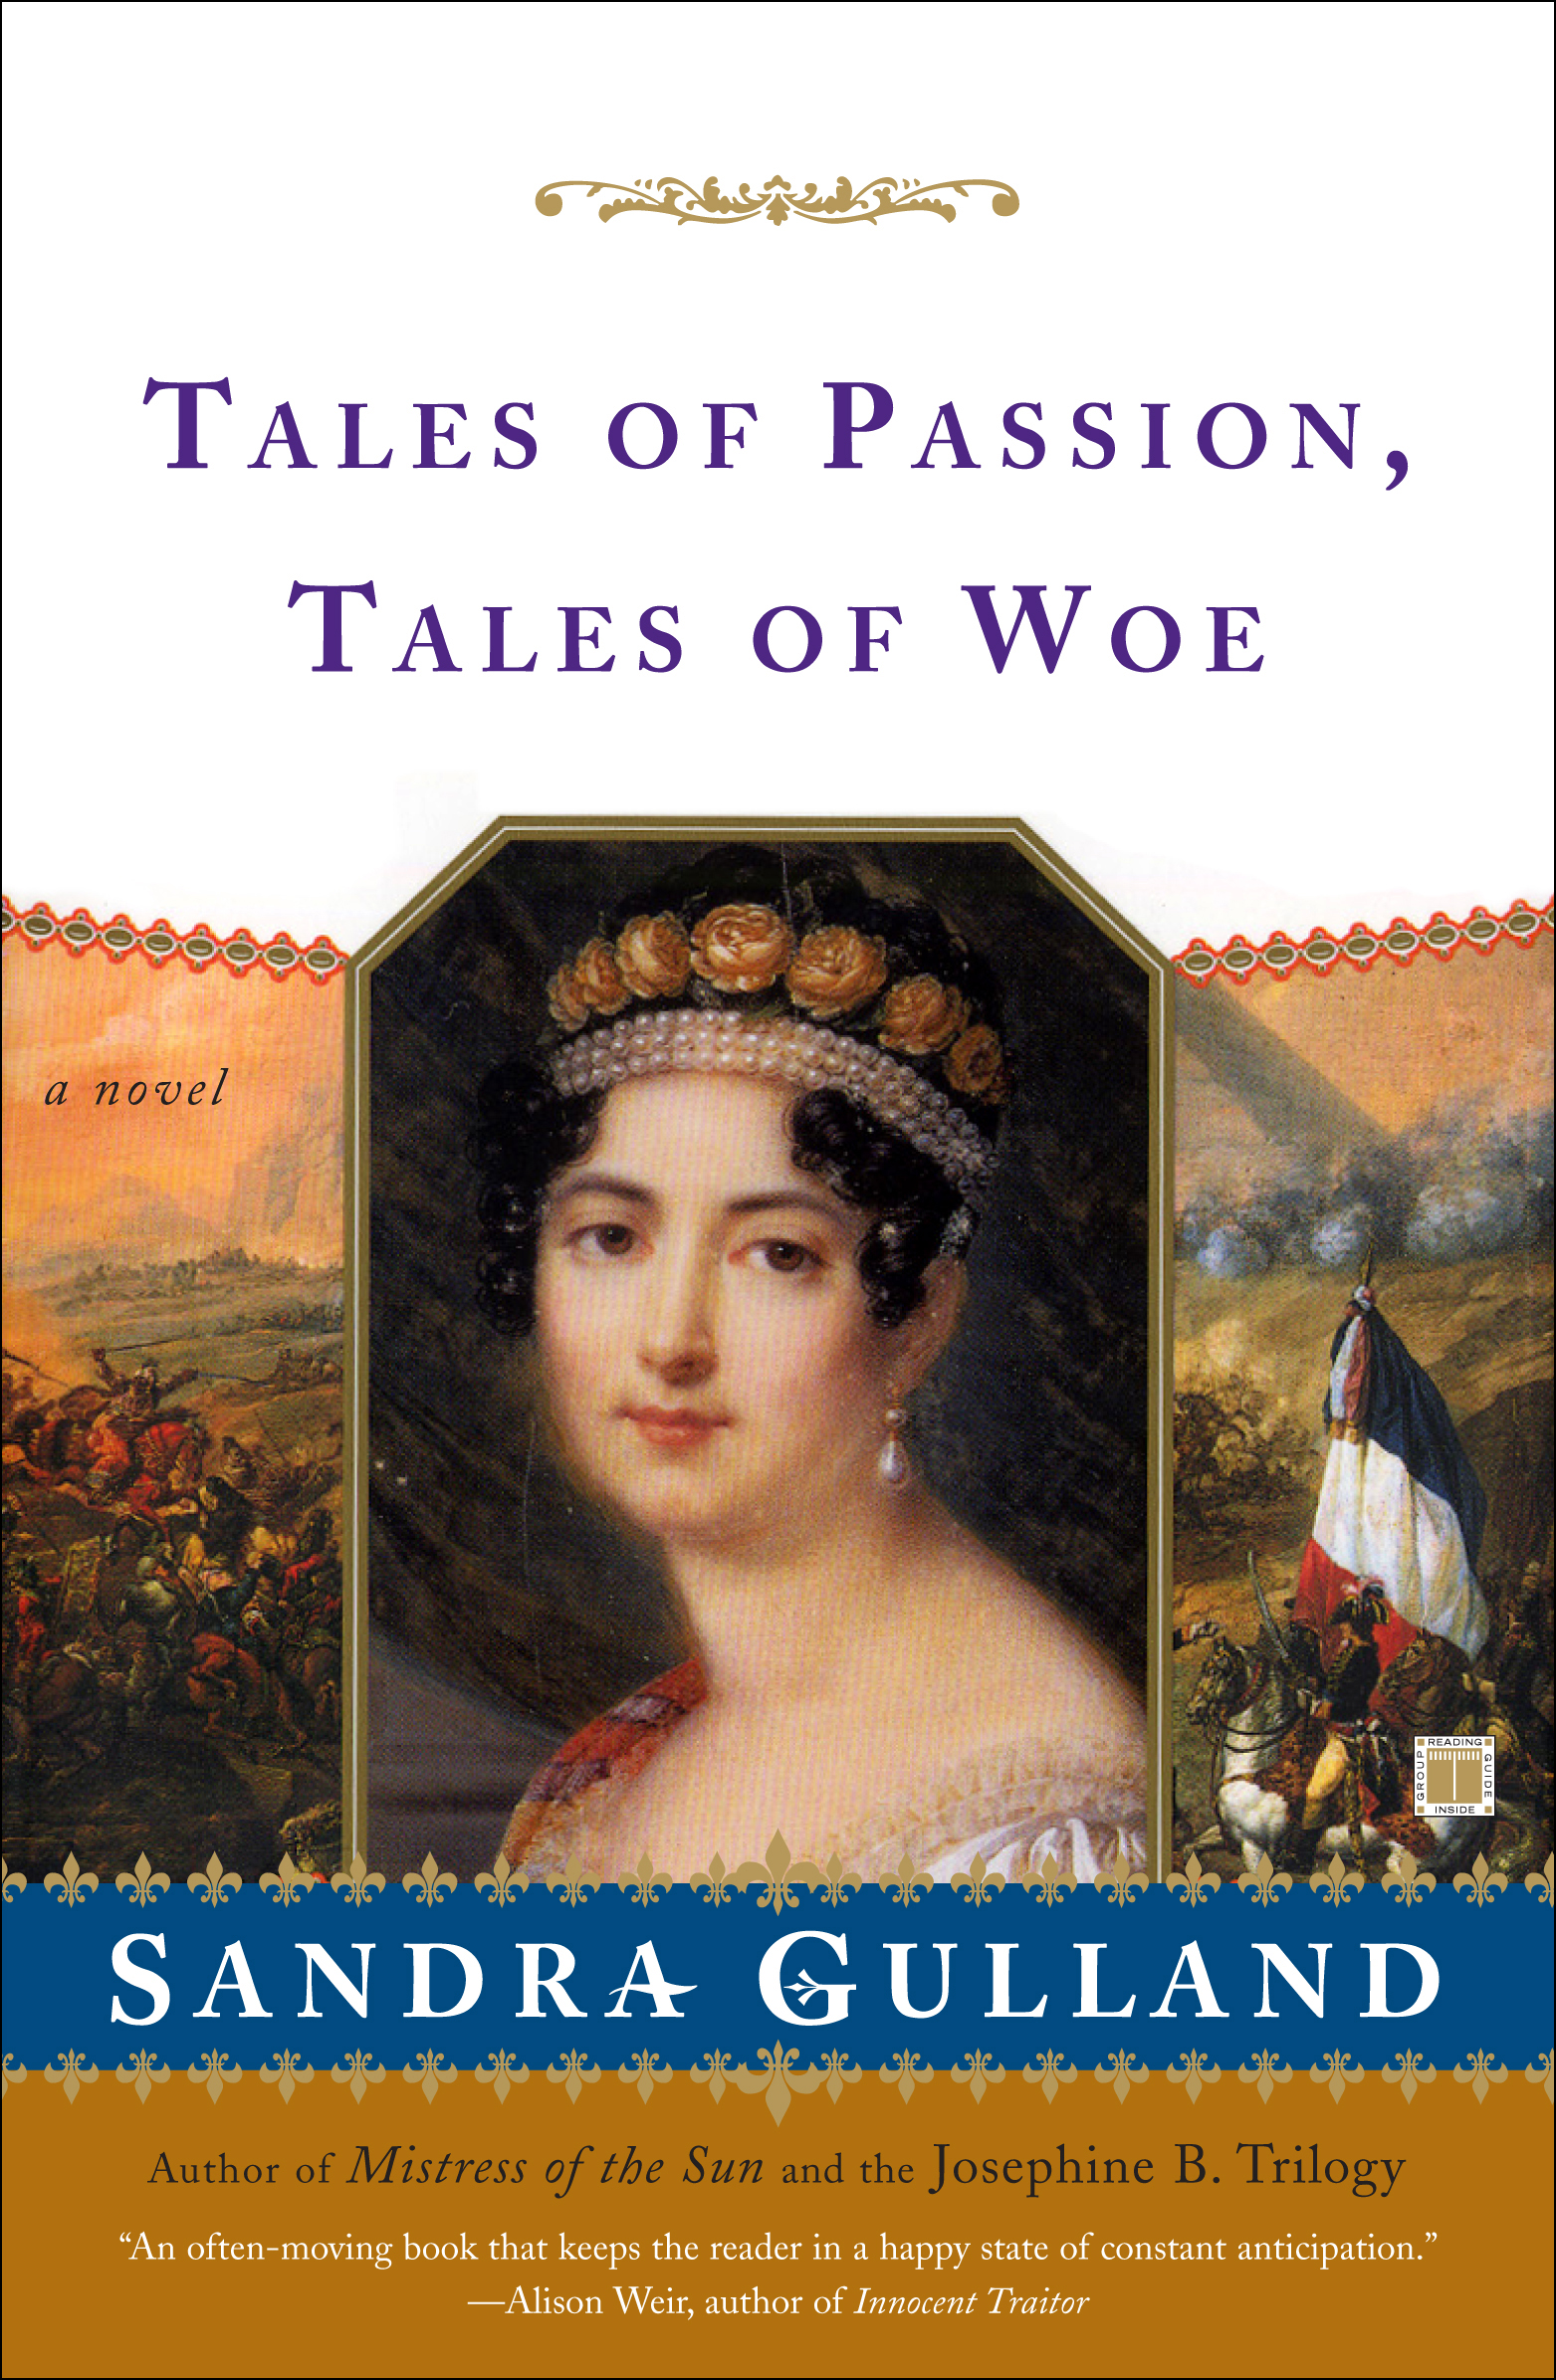 Book Cover Image (jpg): Tales of Passion, Tales of Woe